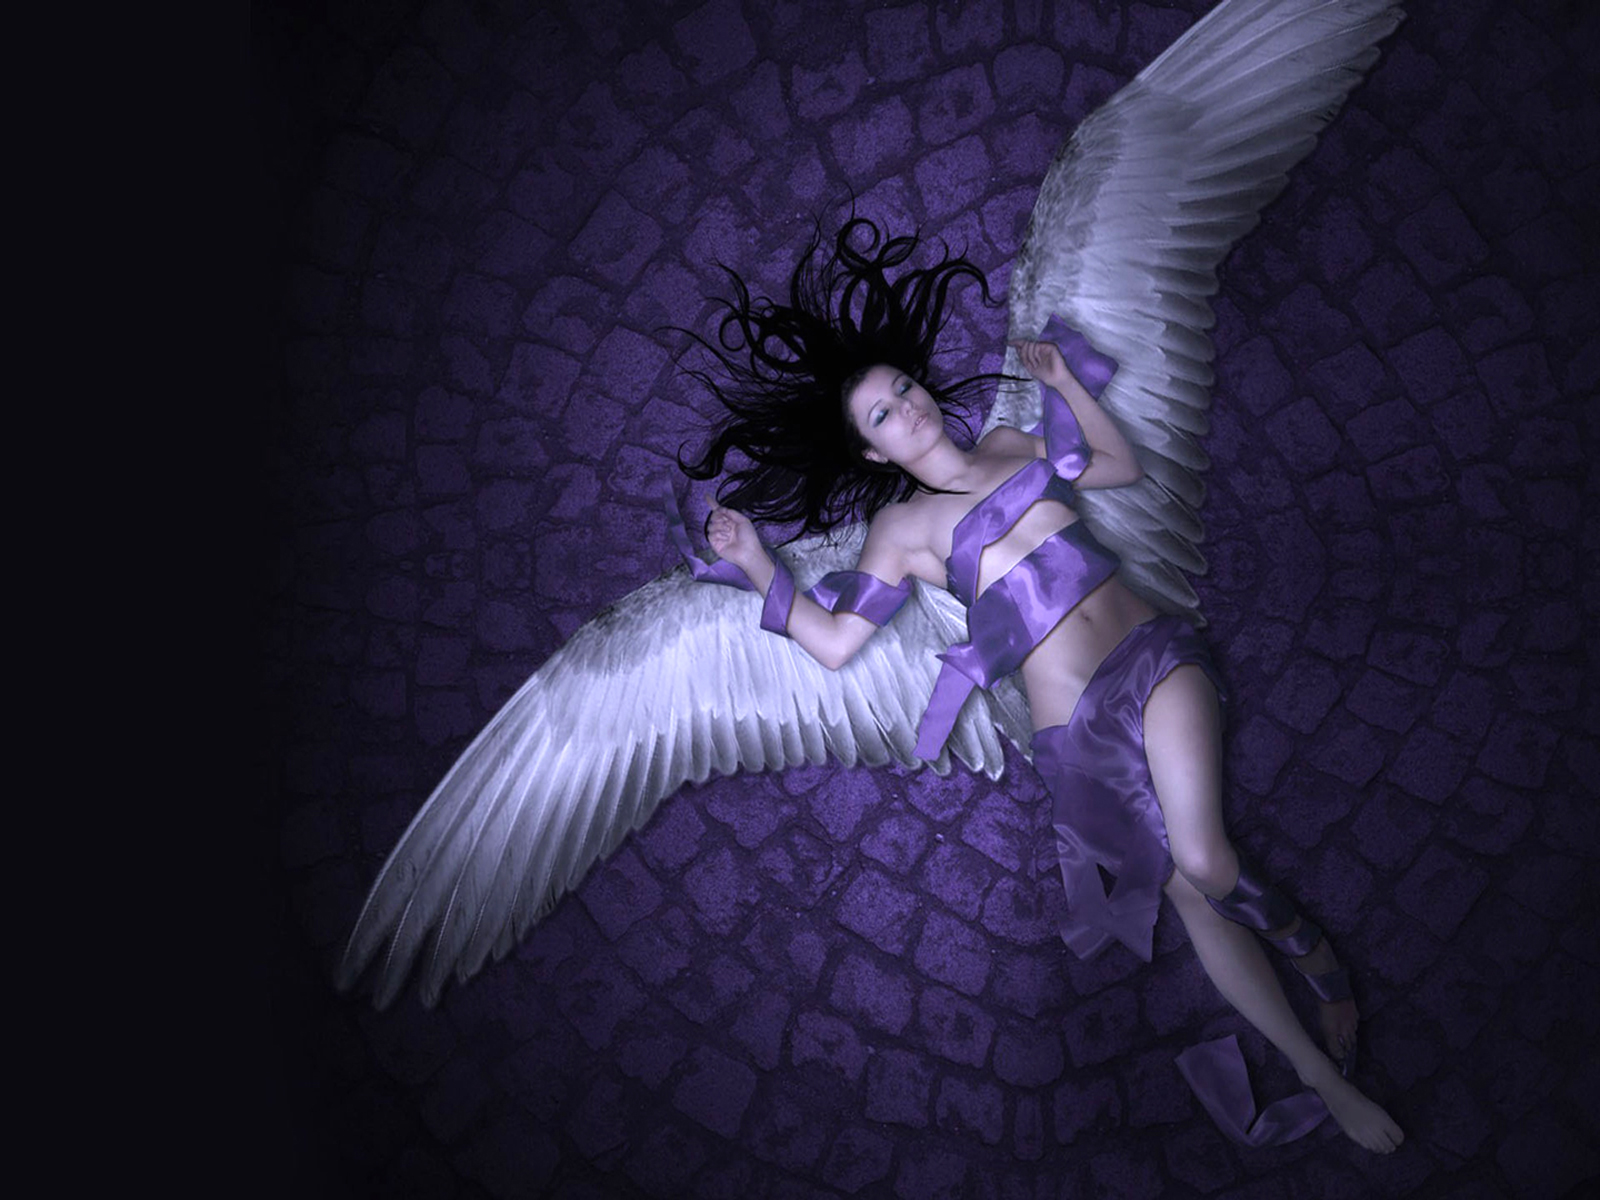 CGI - Engel  Fallen Anjelesa Angel Wallpaper